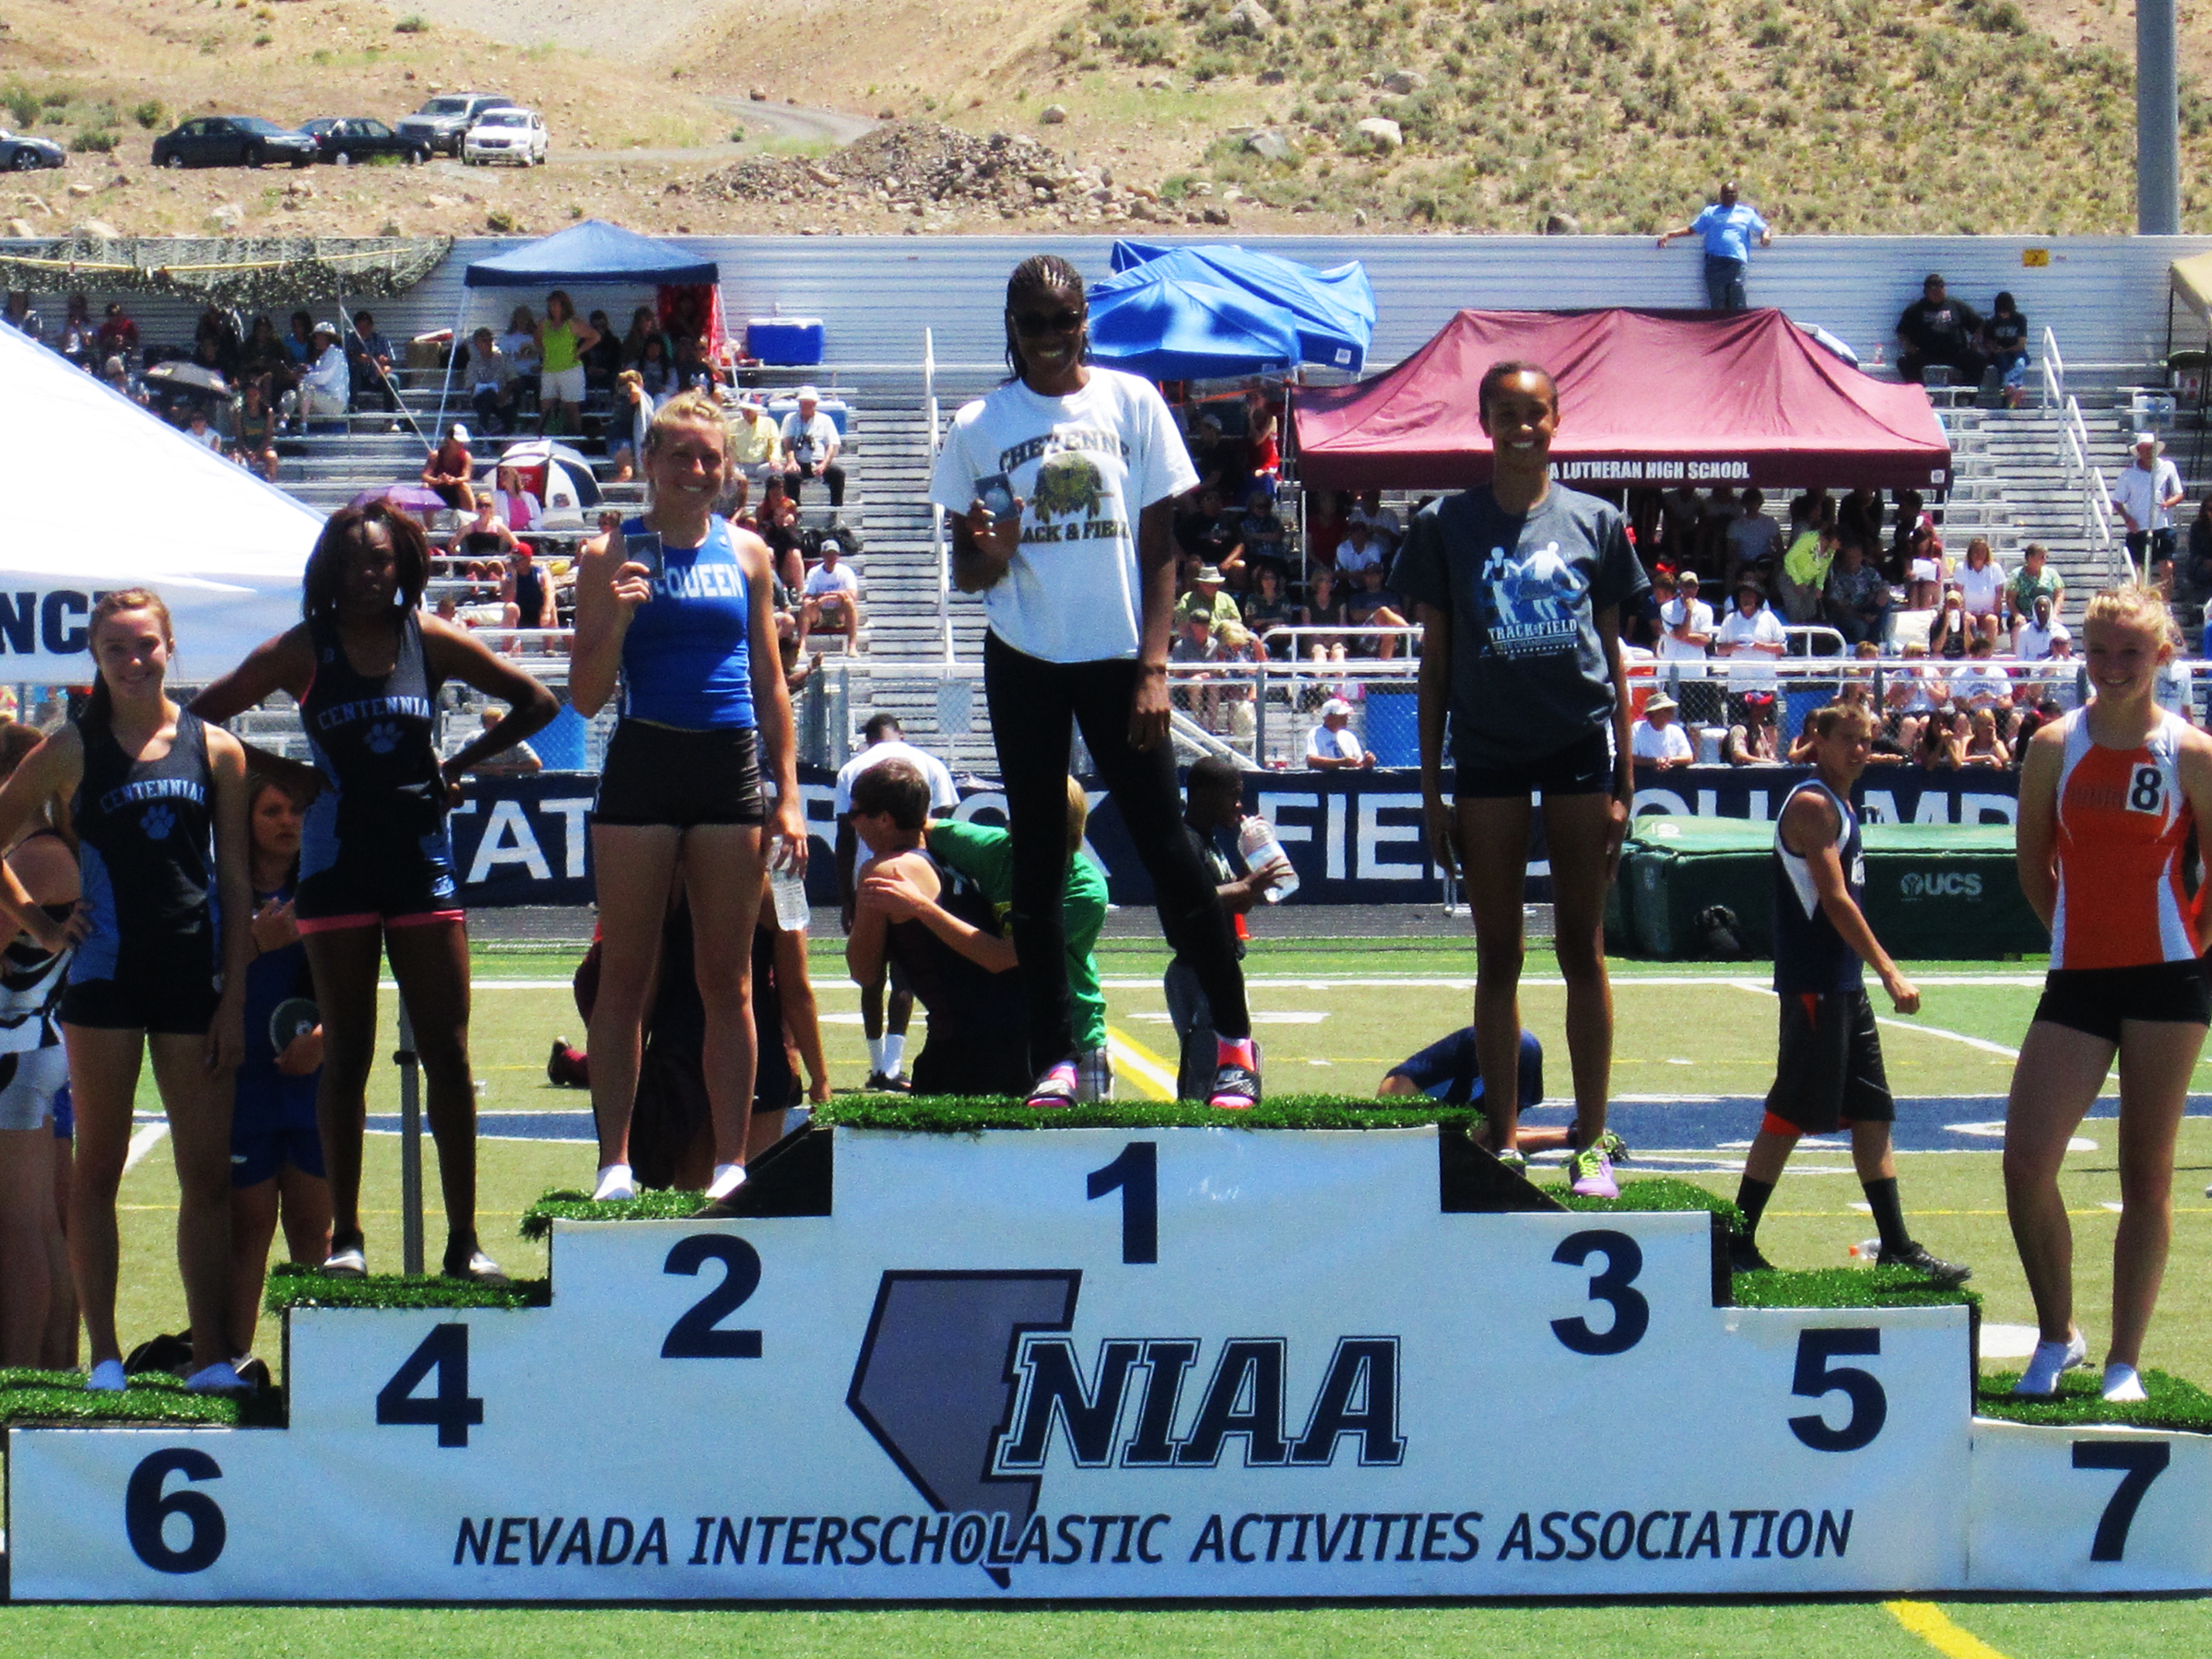 [LIFE]: NIAA Track Championships 2012 | Private Flights and First Place Sights, PART 1